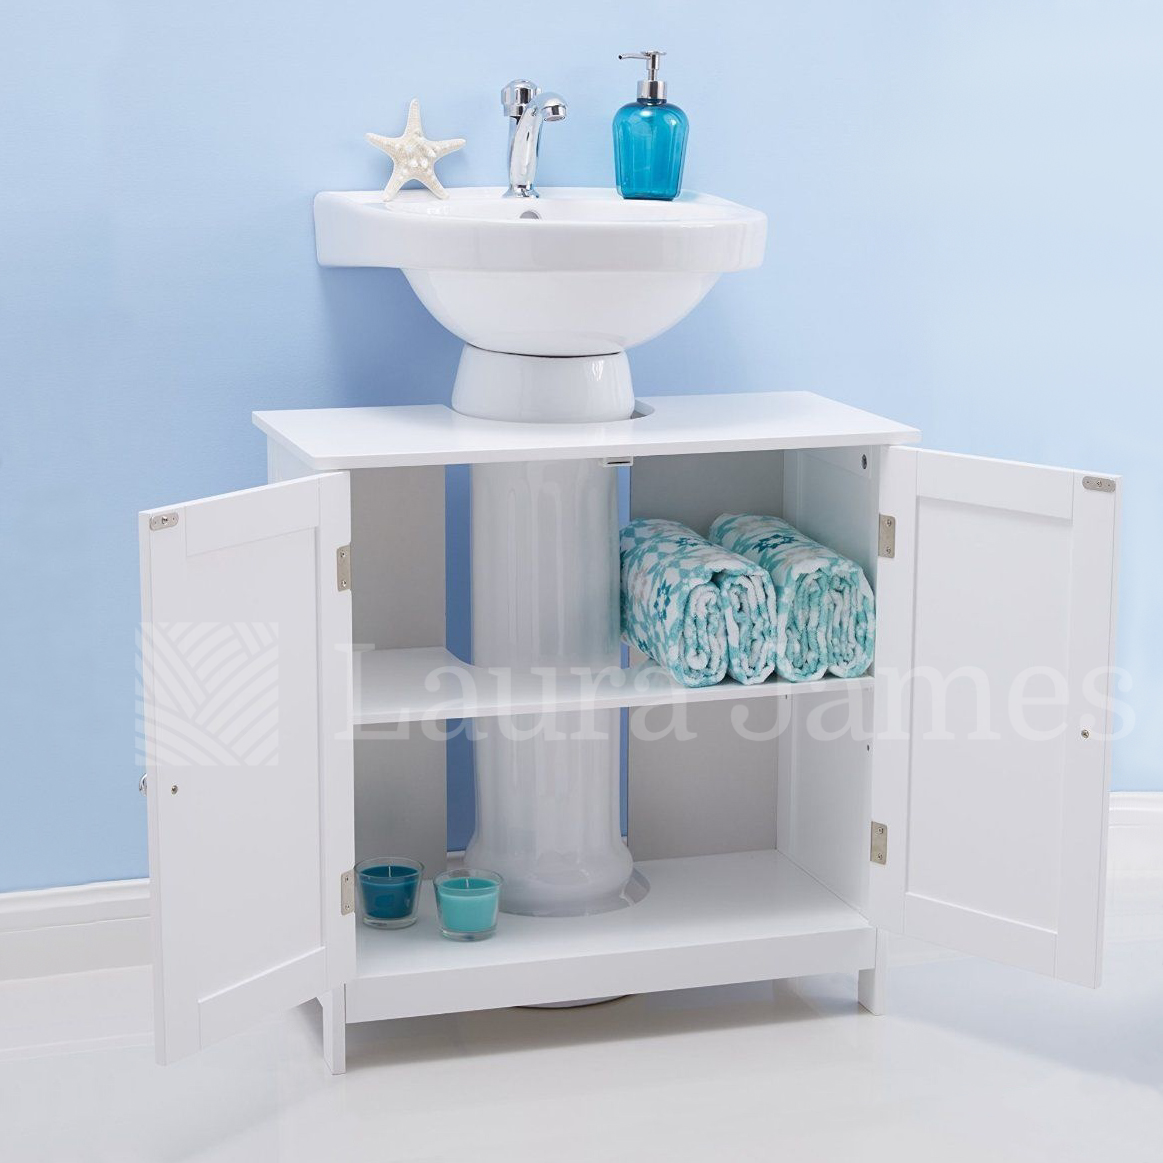 Under sink bathroom cabinet storage unit cupboard white ebay - Under sink bathroom storage cabinet ...